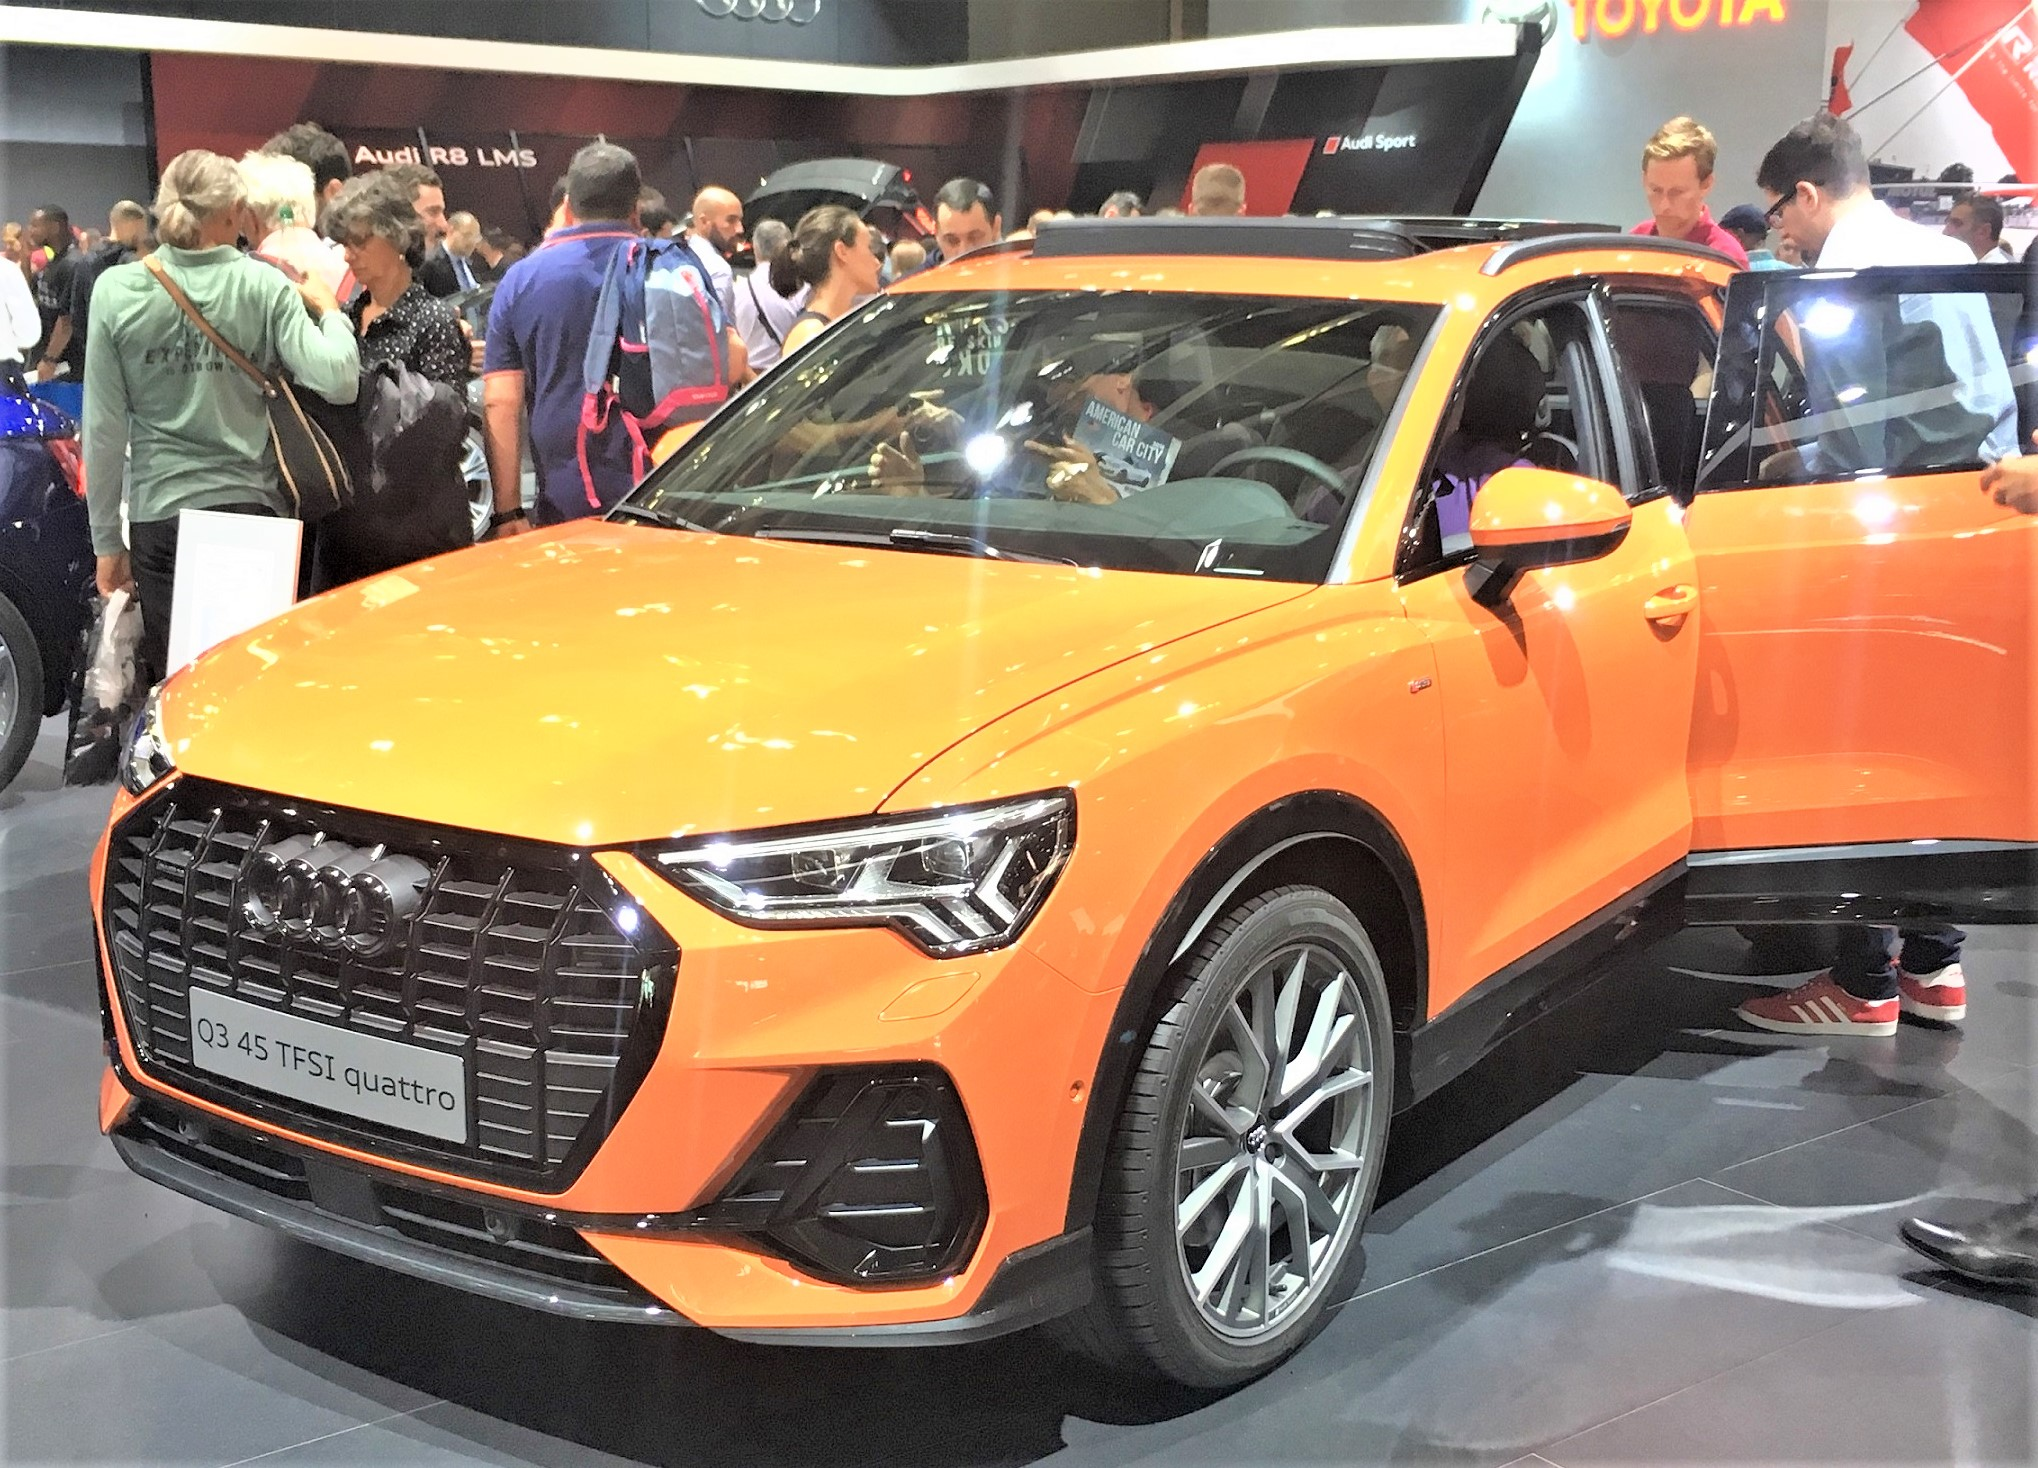 Brand New Audi Q3 Coming Soon. Taking orders now.